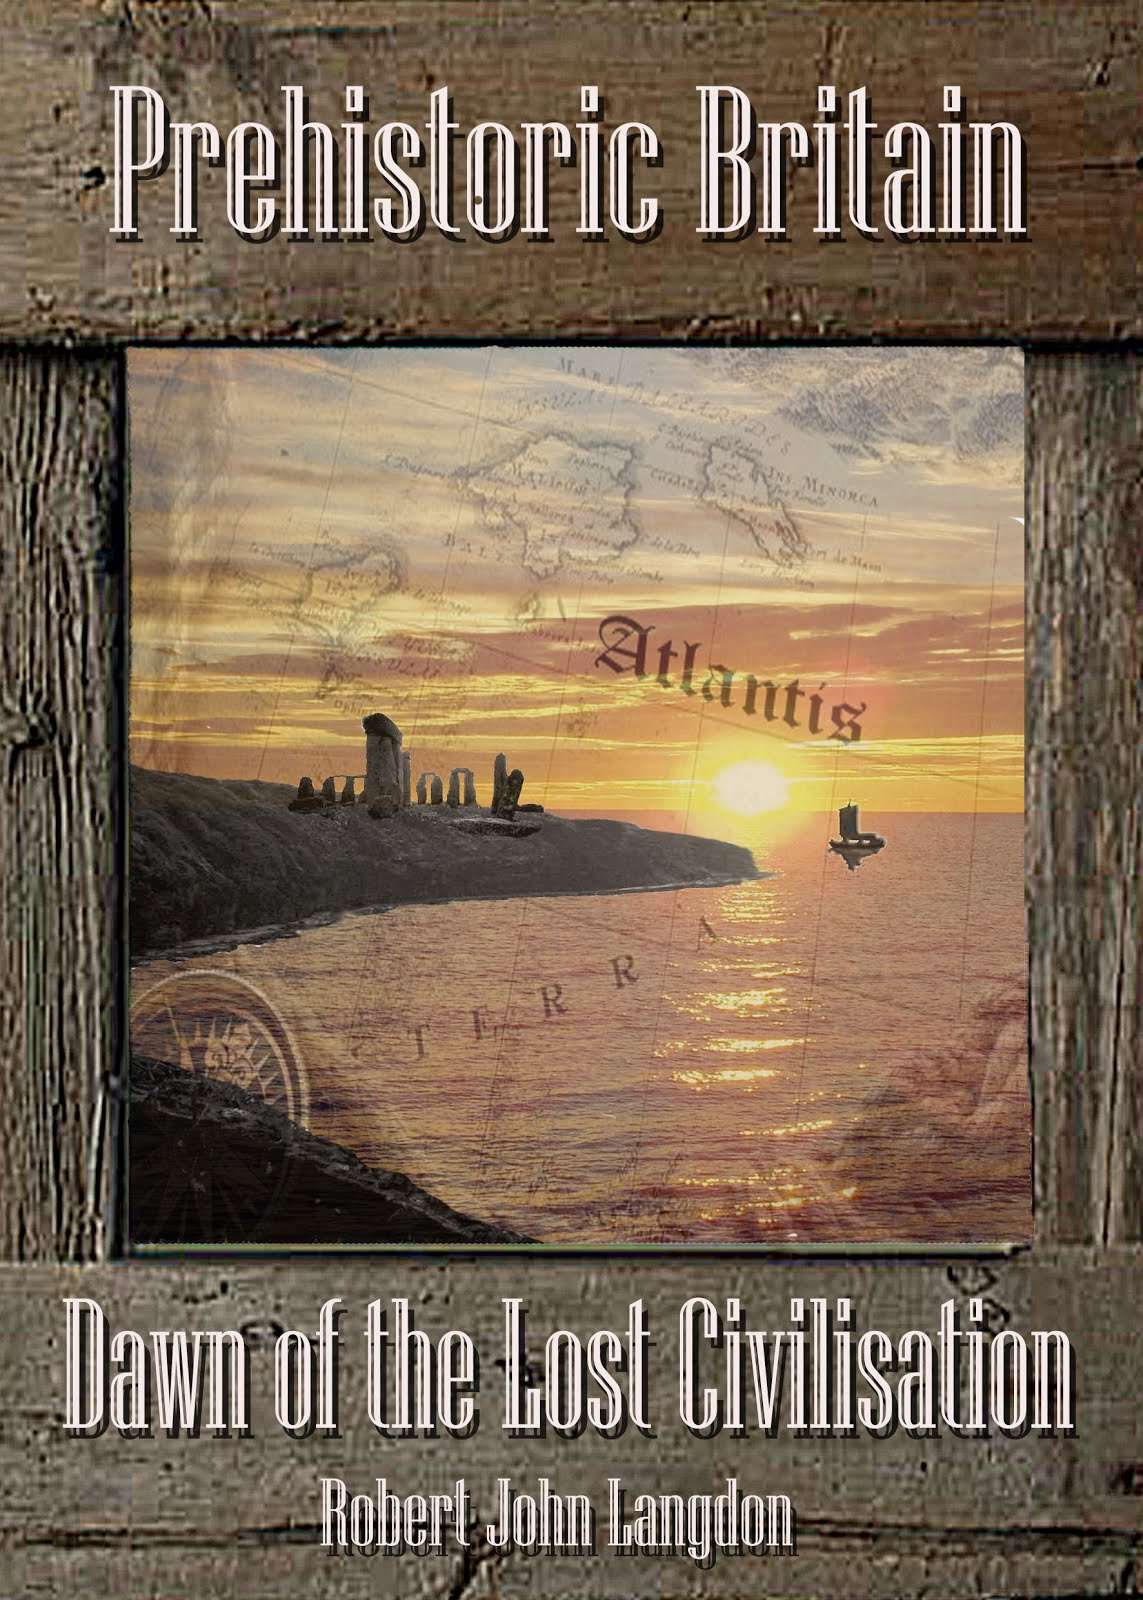 Dawn of the Lost Civilisation